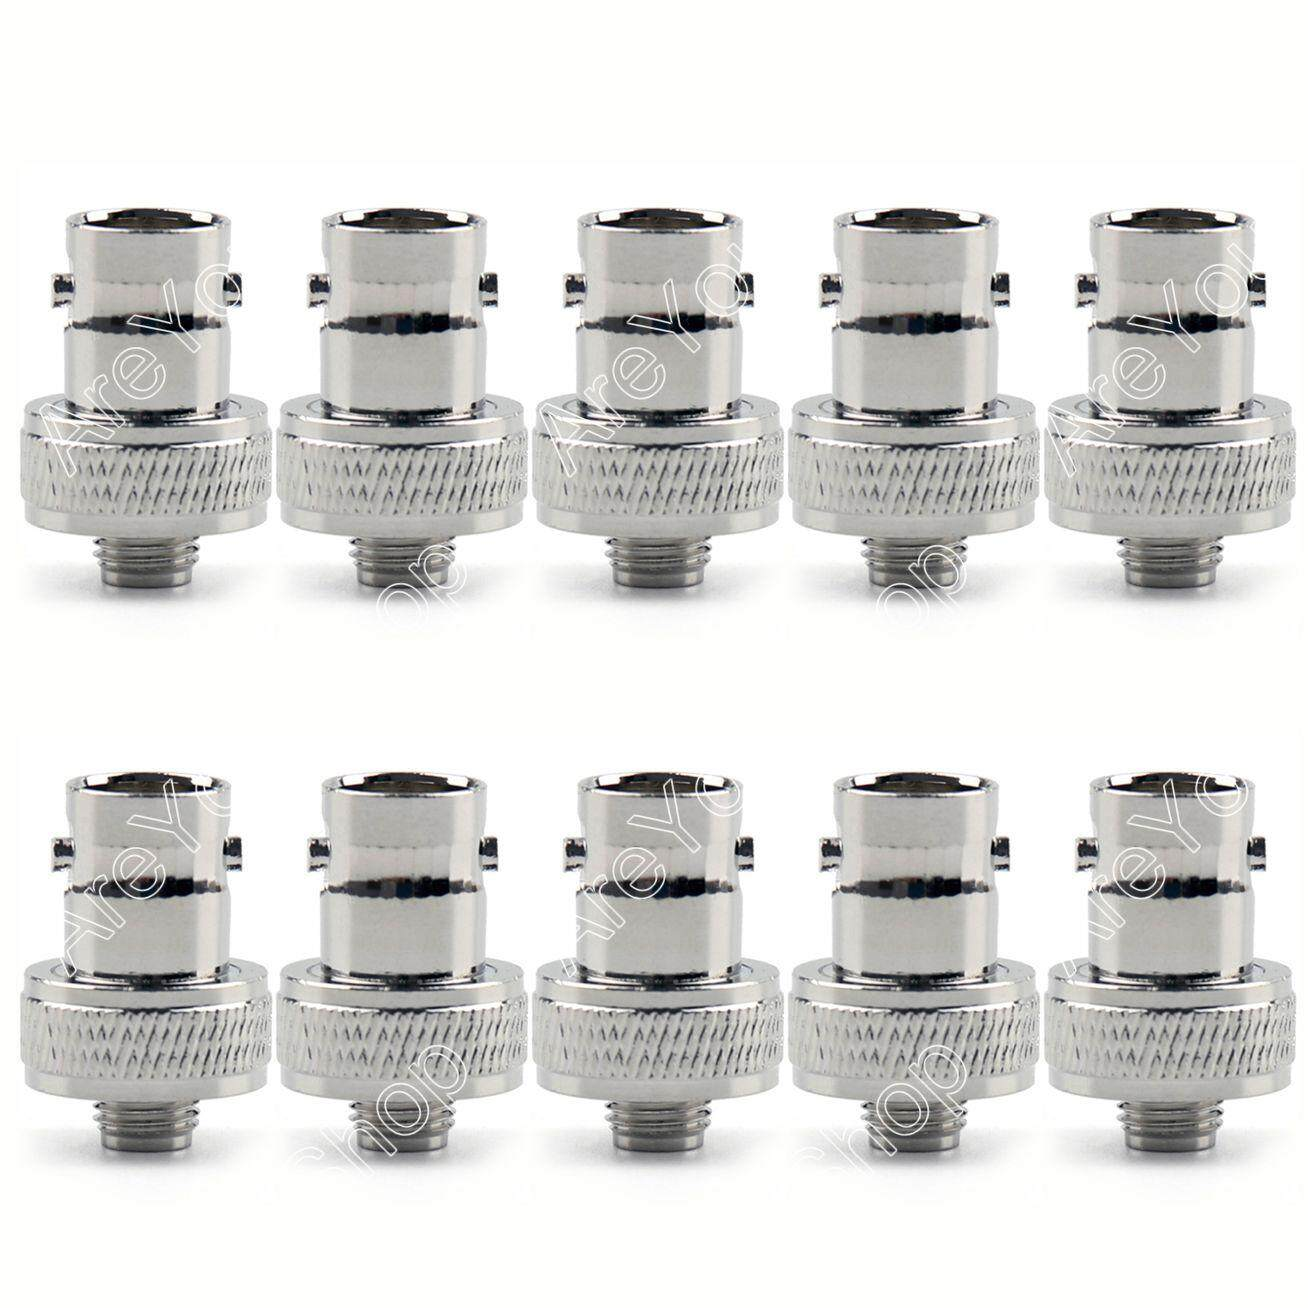 Areyourshop 10Pcs Adapter BNC Female Jack To SMA Female RF Connector Gold Plating F/F